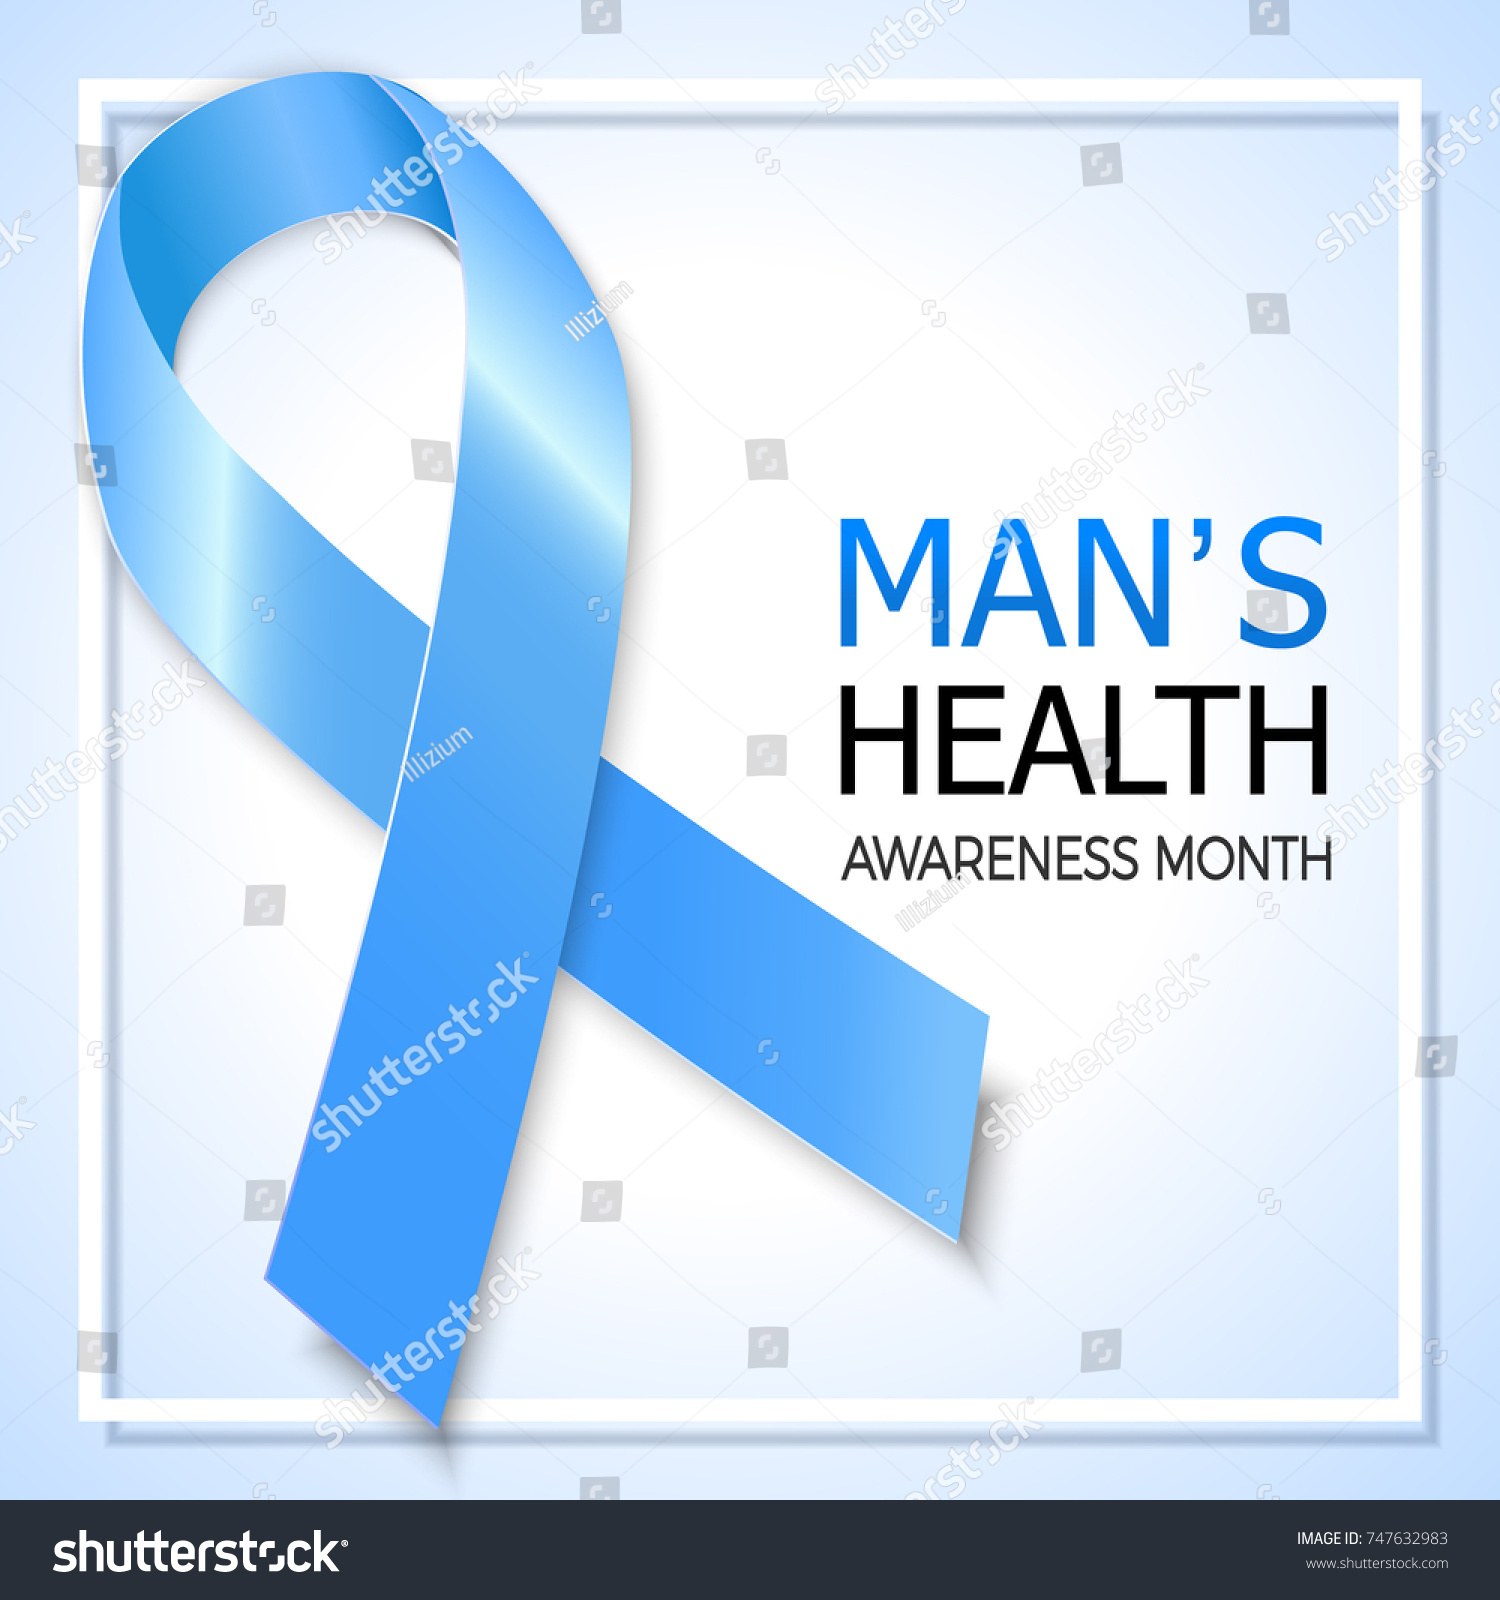 Blue ribbon symbol prostate cancer awareness stock illustration blue ribbon symbol for prostate cancer awareness month background design for men social and health buycottarizona Image collections